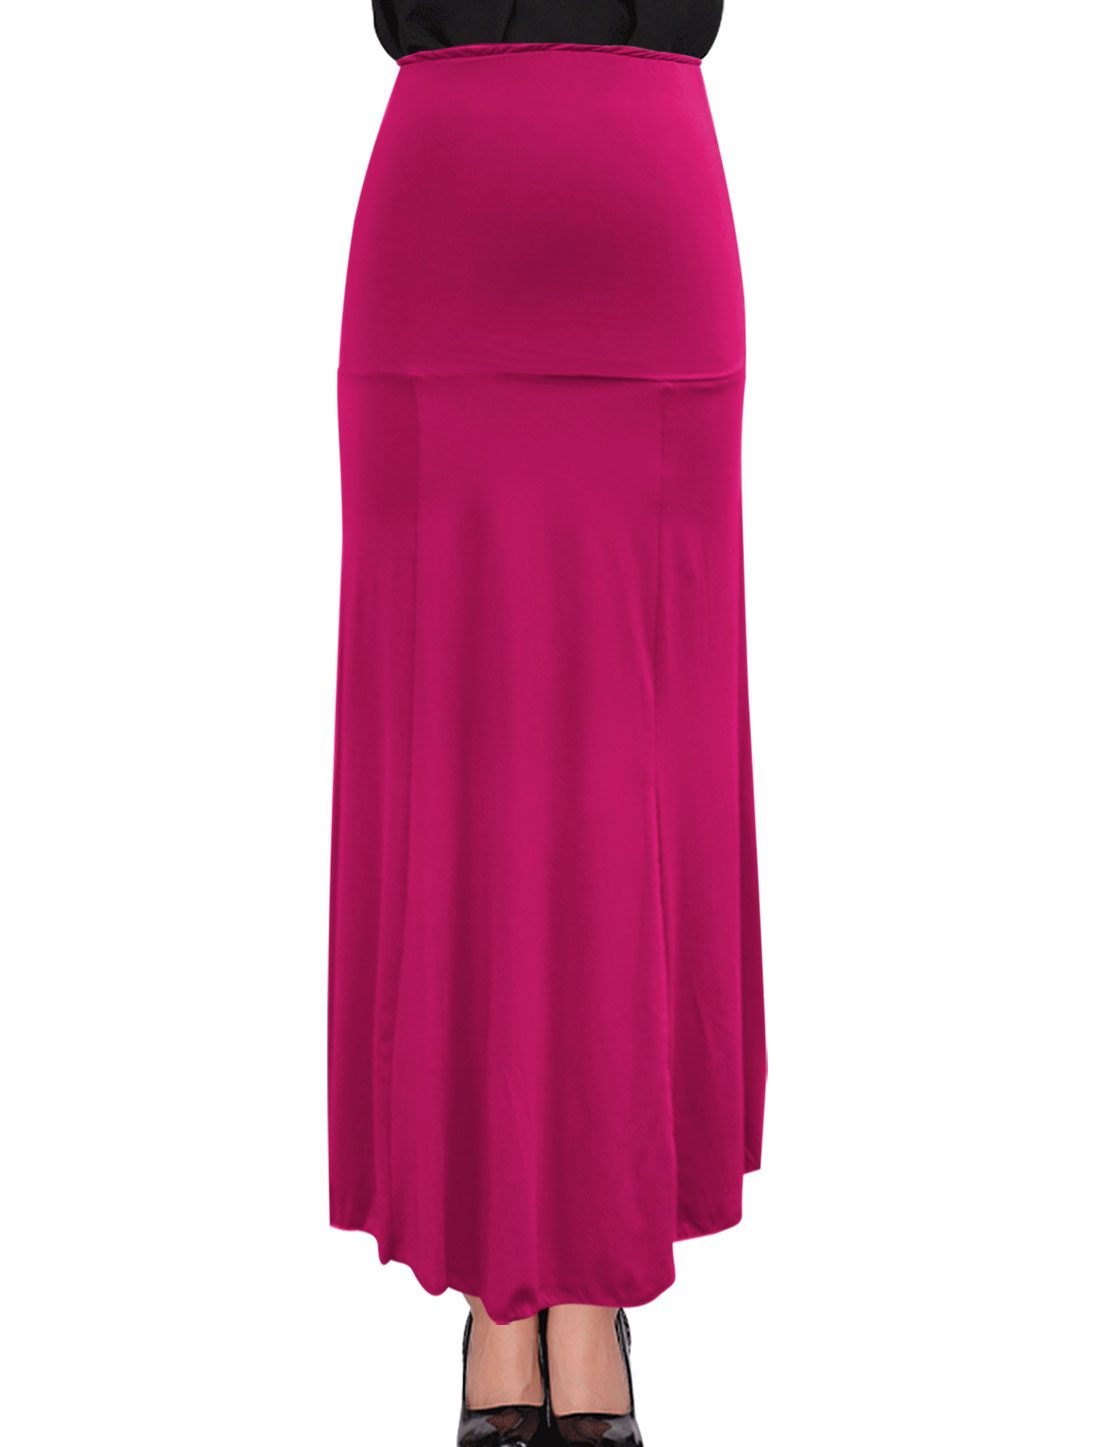 Lady Fashion Design Unlined Stretchy Wasit Fuchsia Beach Skirt M